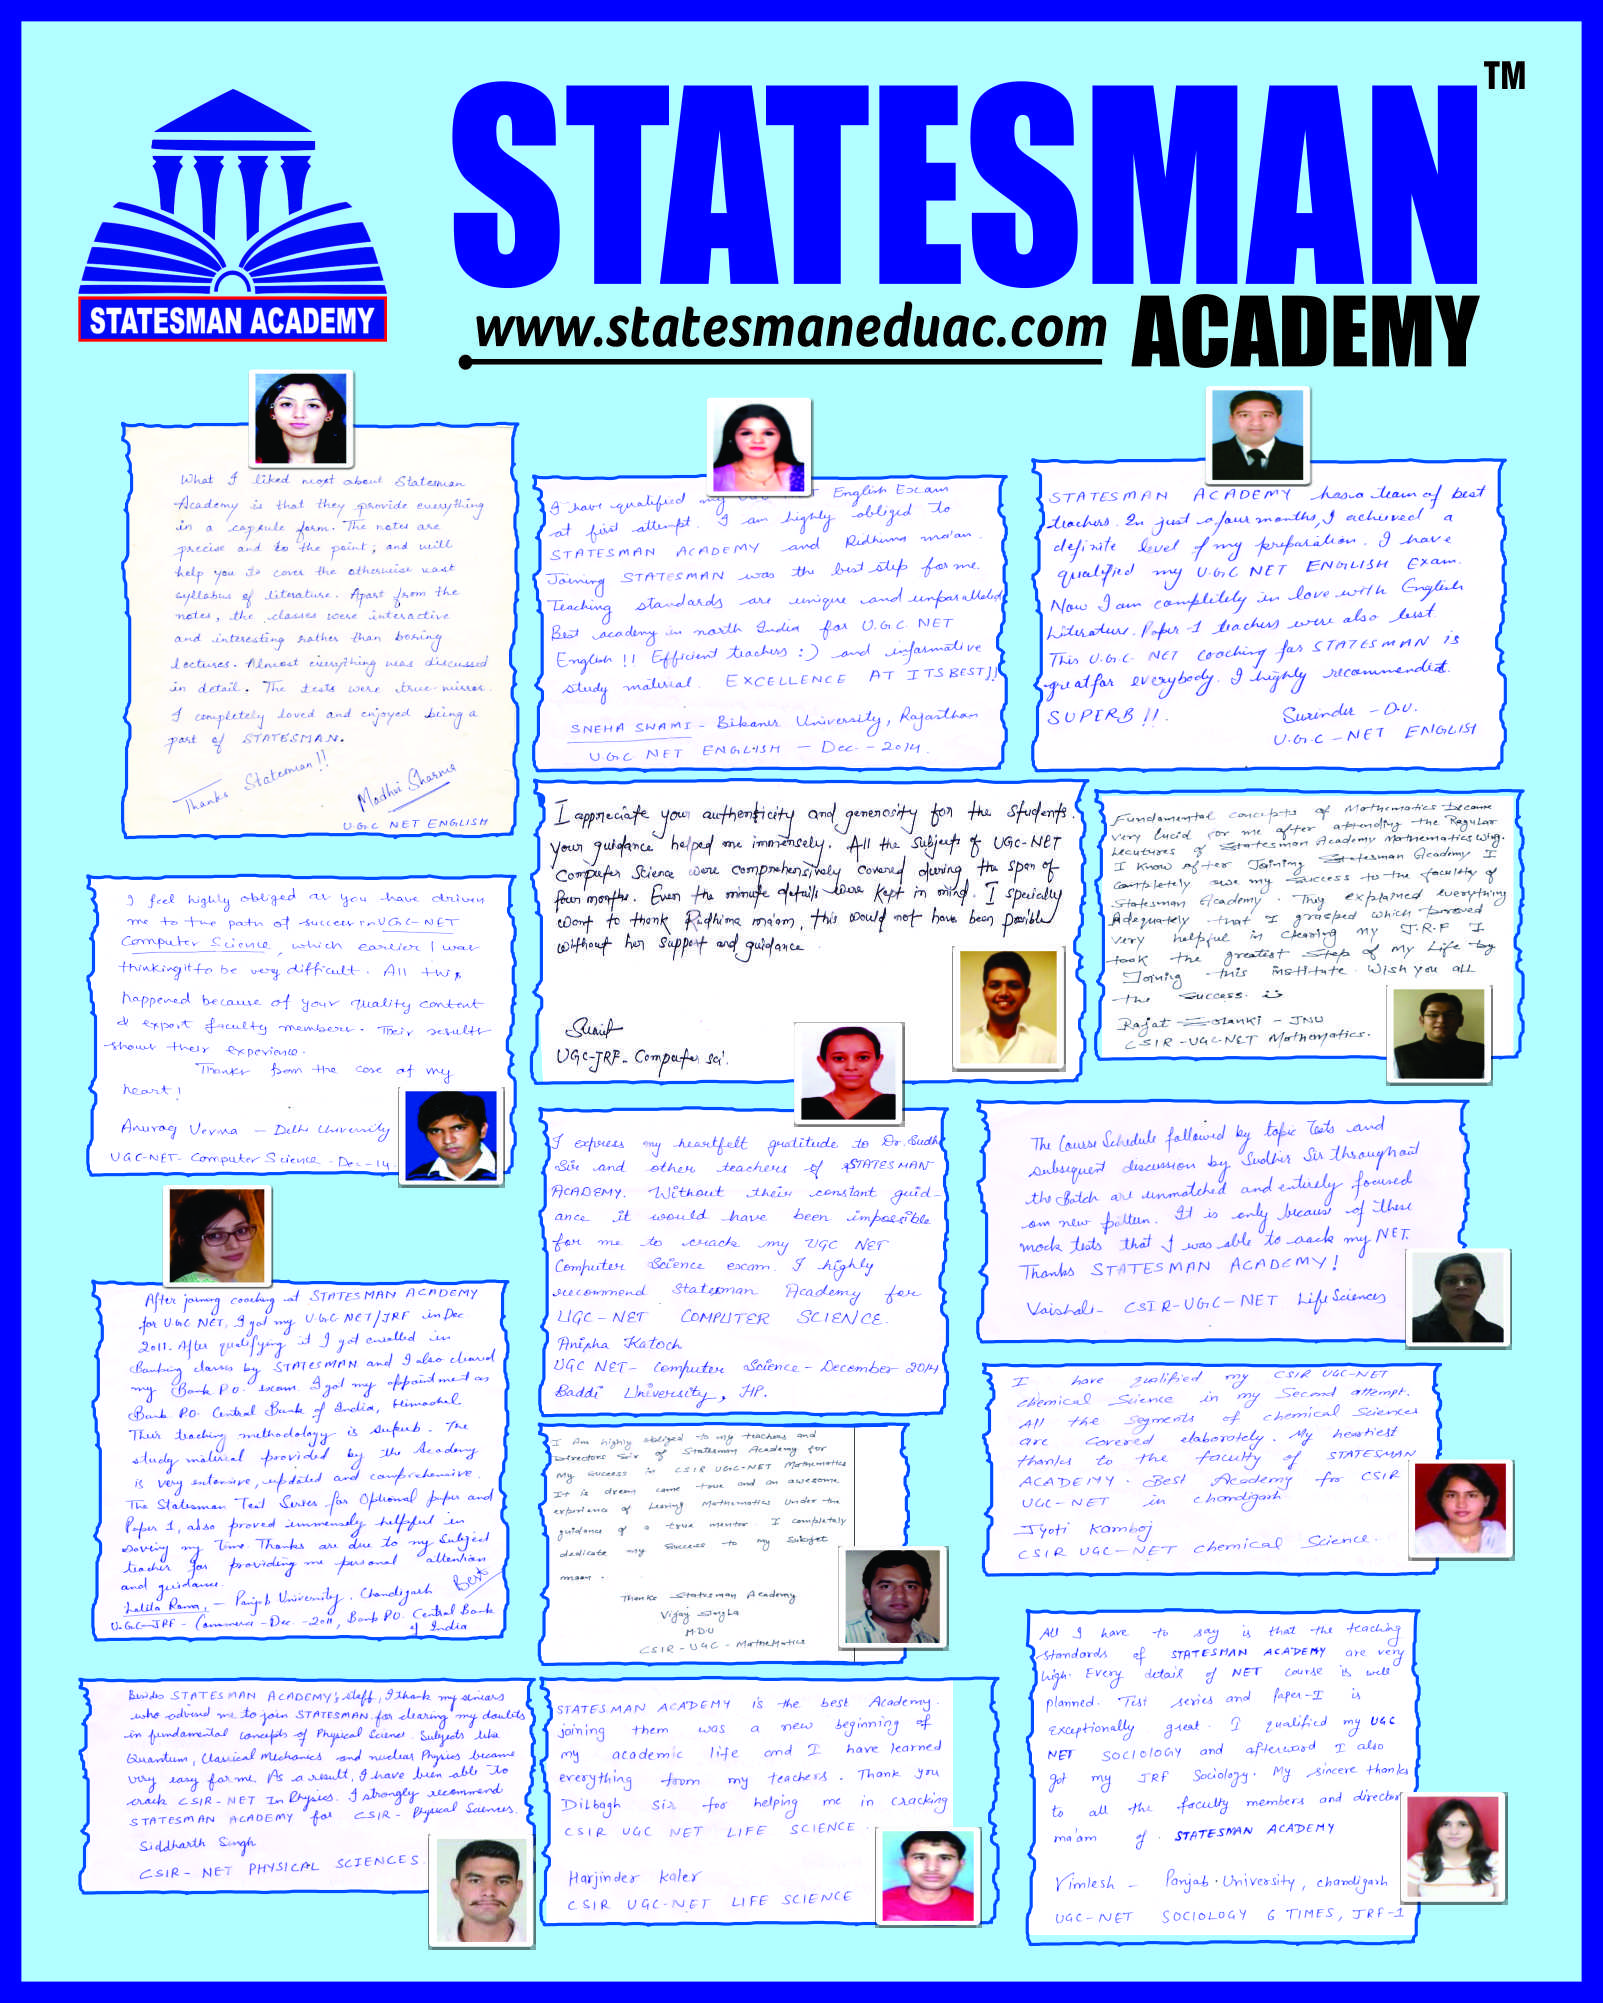 profile of Statesman Academy